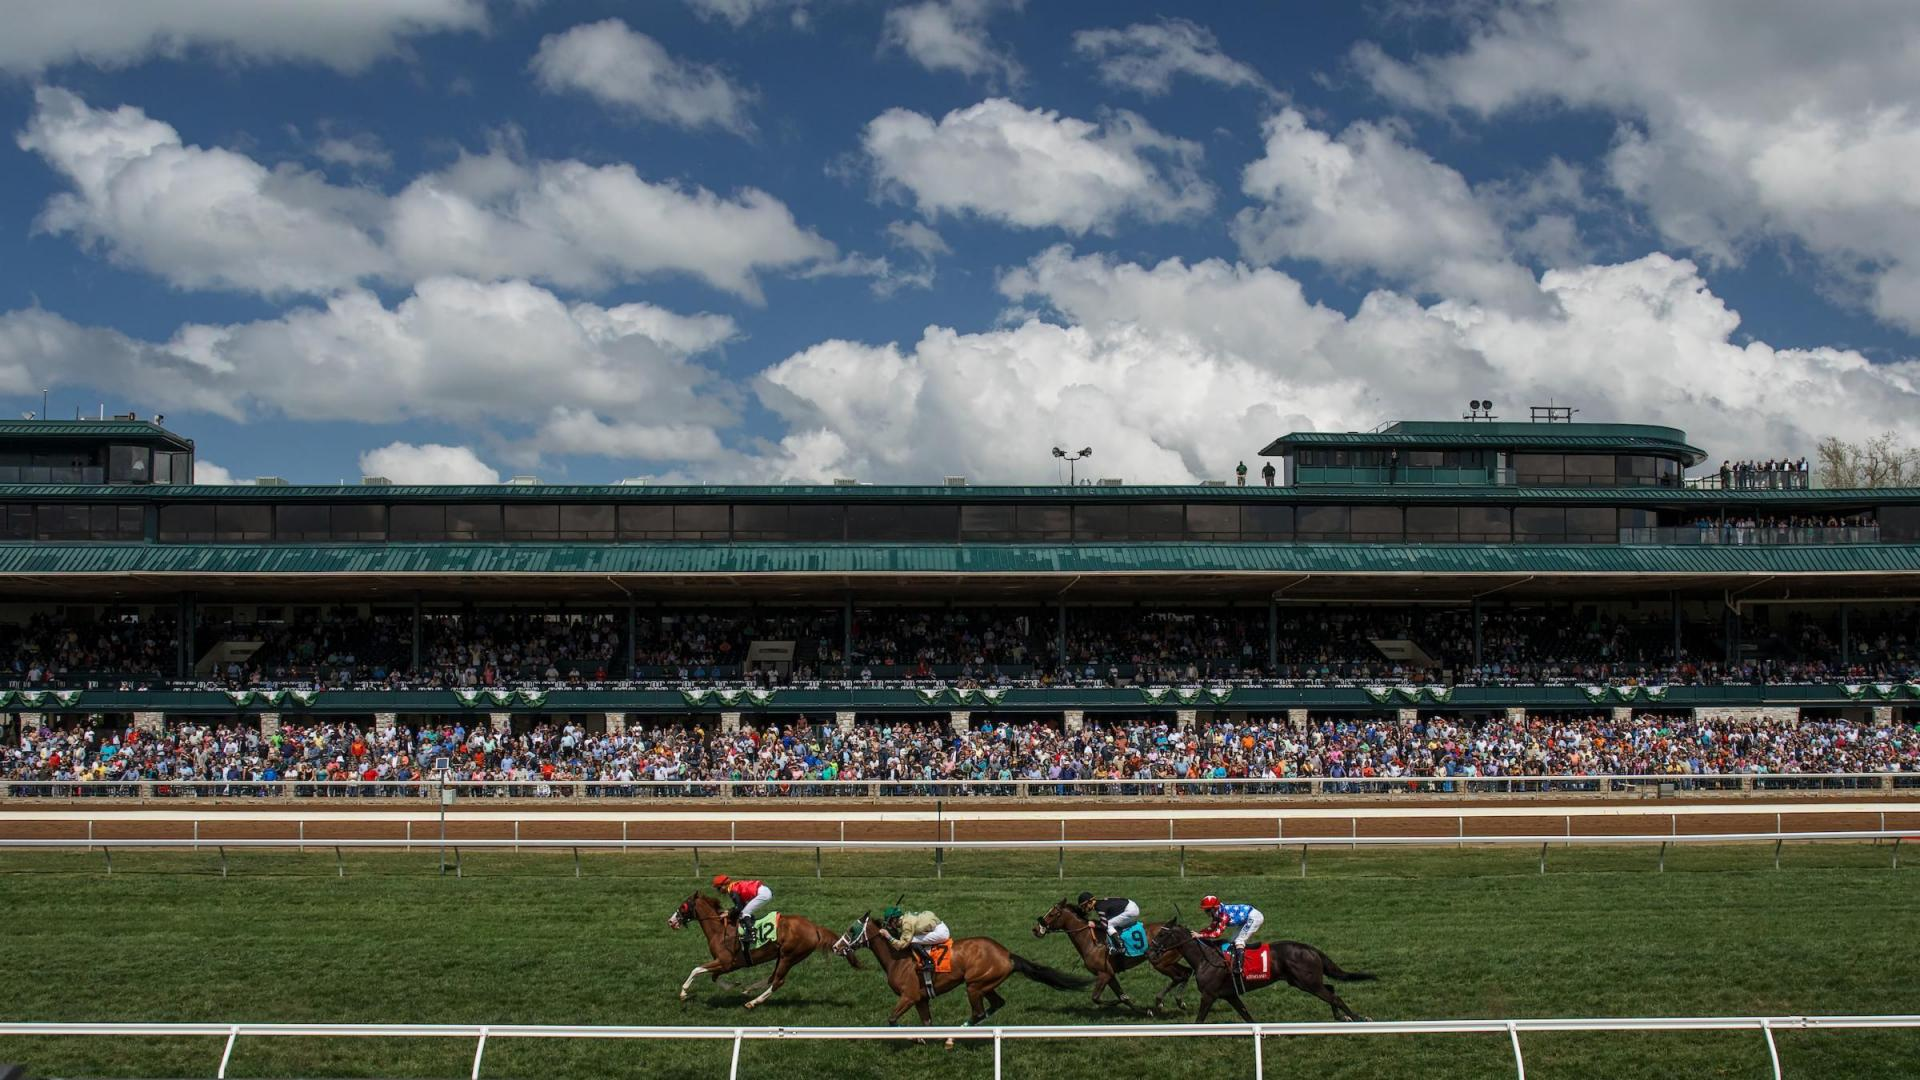 Spring turf racing at Keeneland